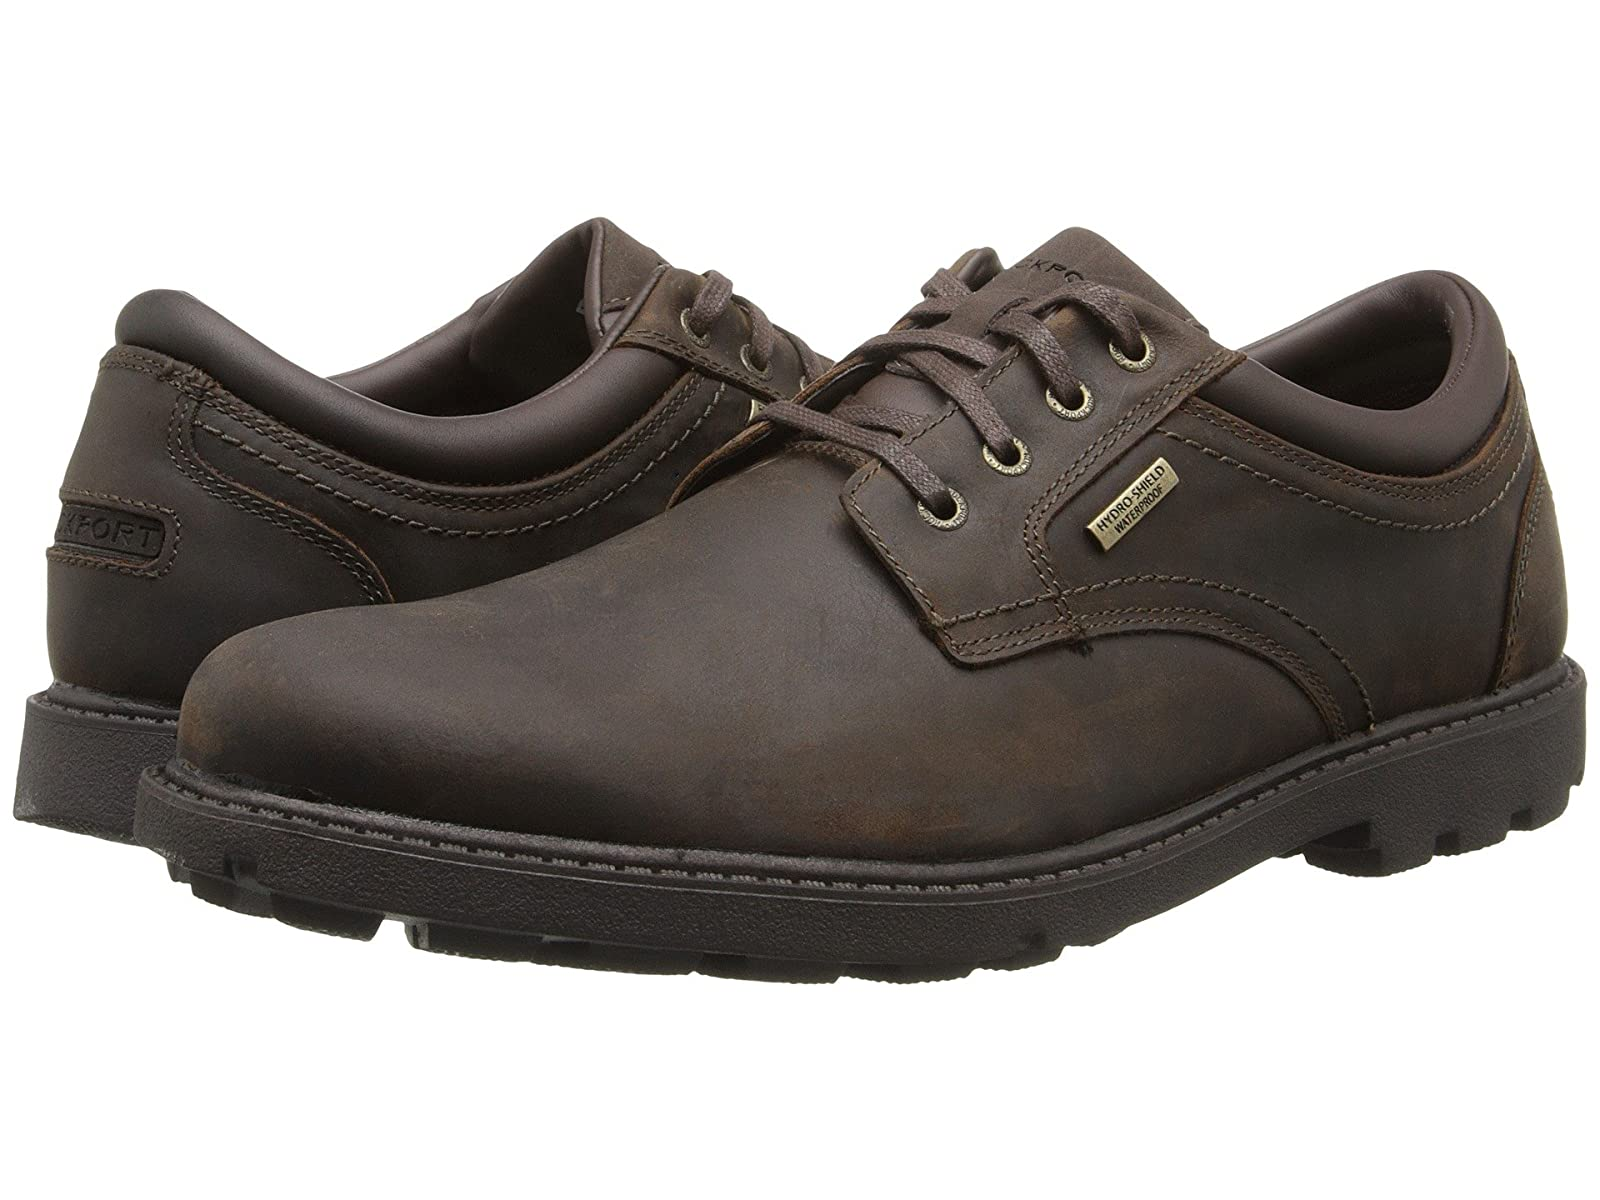 Rockport Storm Surge Water Proof Plain Toe OxfordCheap and distinctive eye-catching shoes